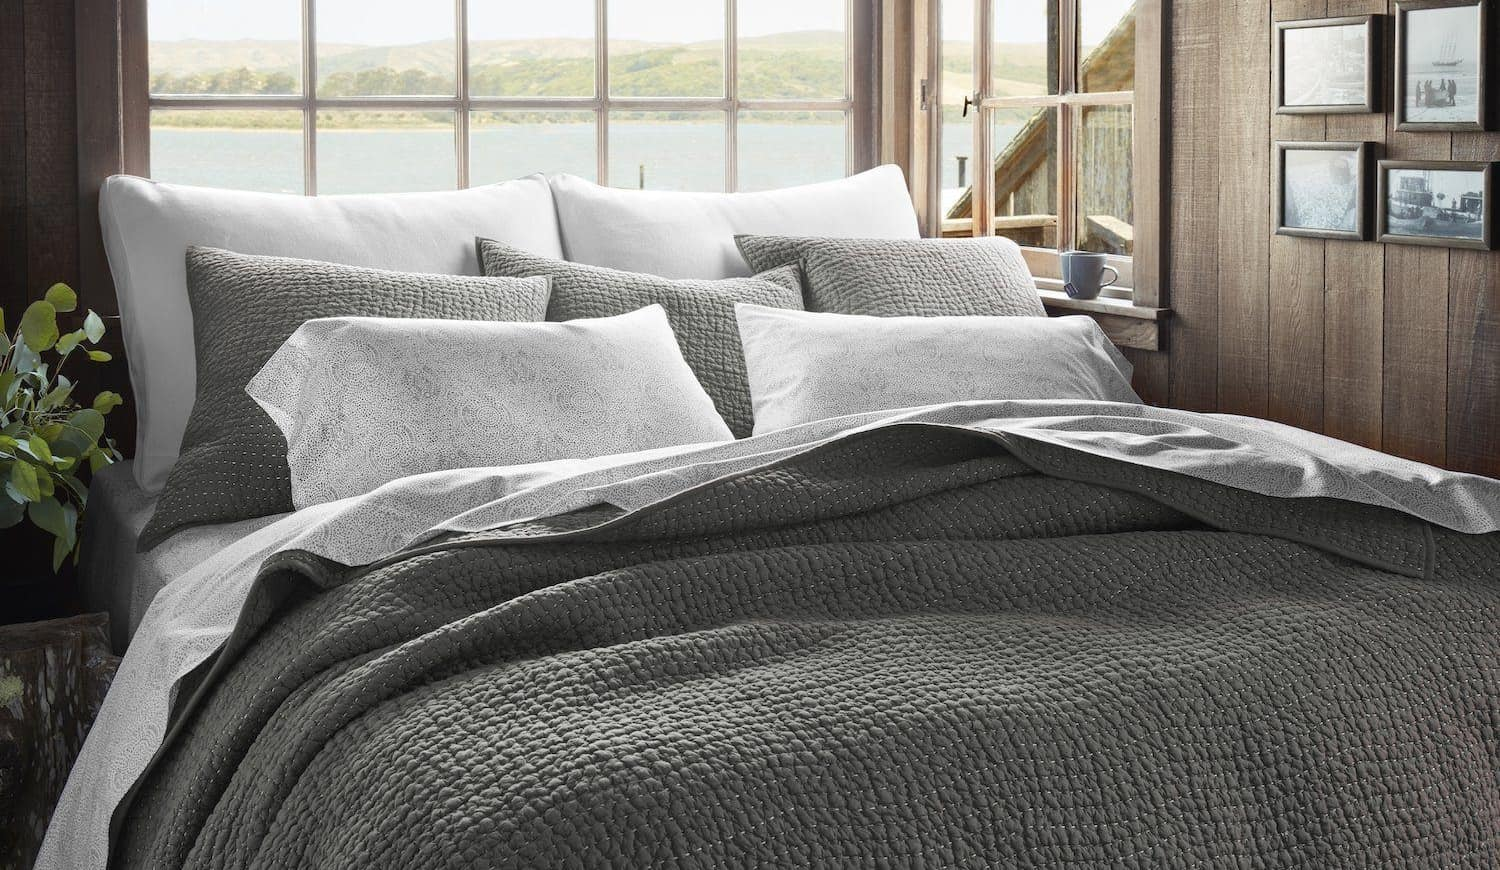 Charcoal waffle weave bedding with seven pillows with an open window overlooking water behind the bed